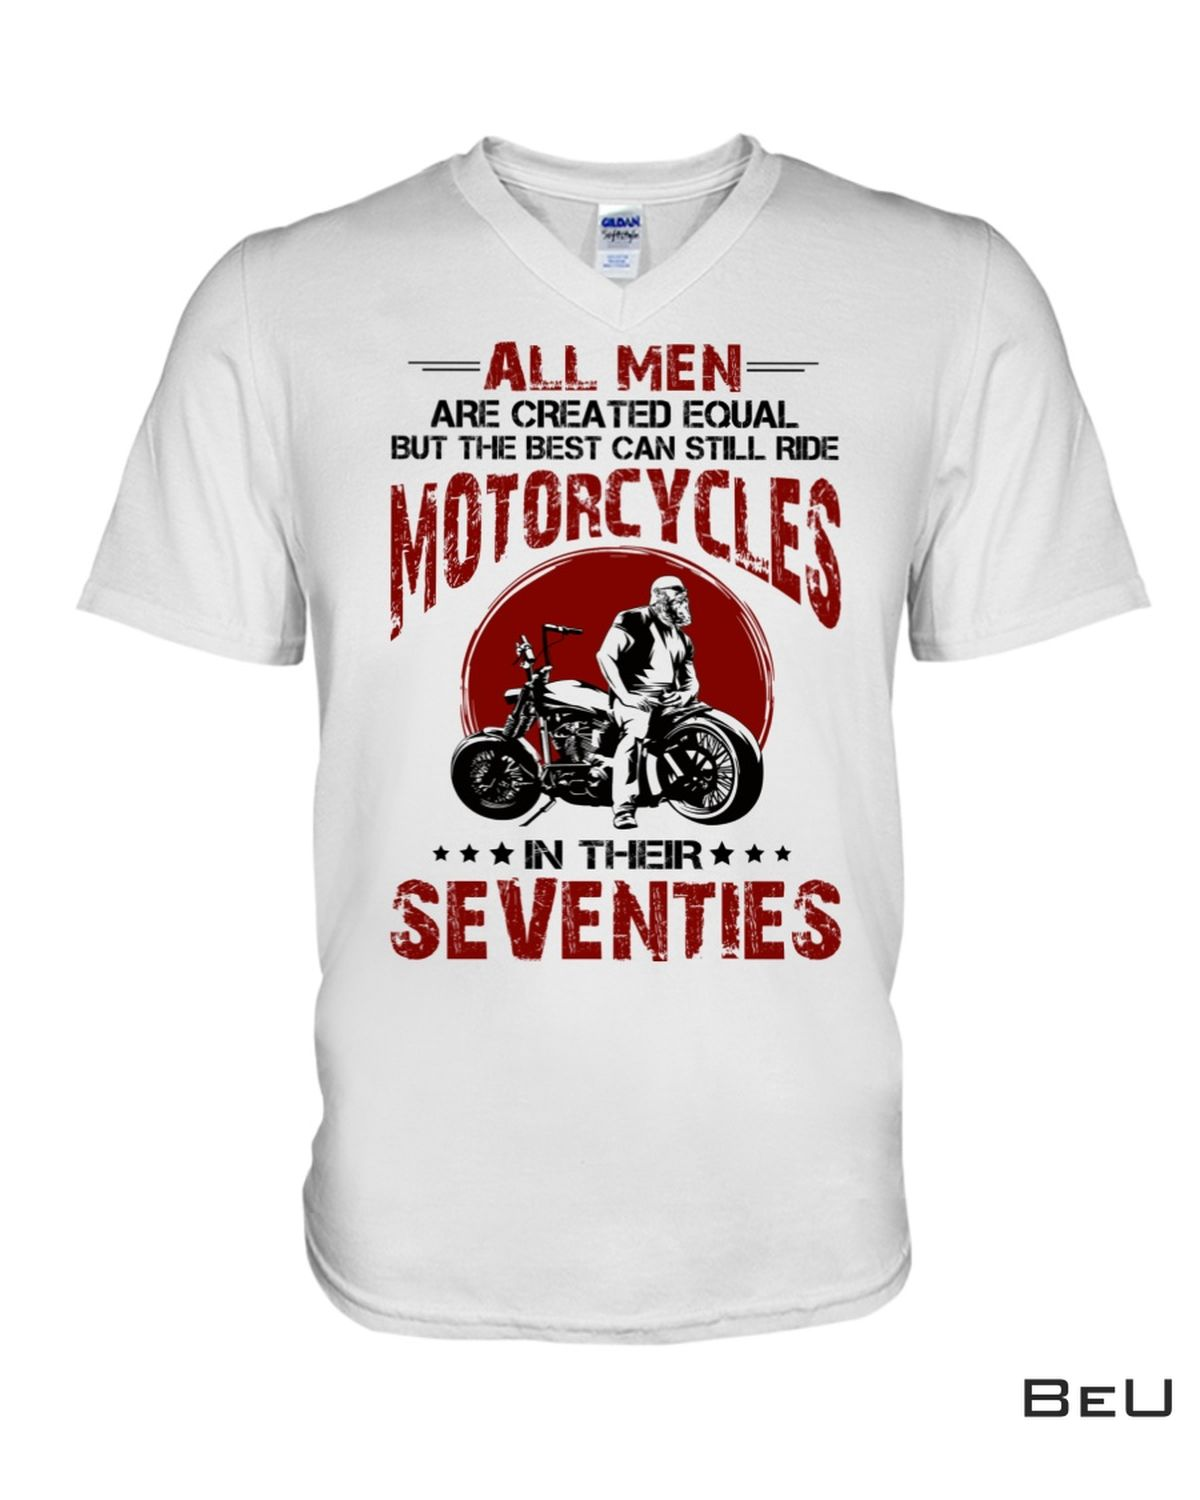 Where To Buy All Men Are Created Equal But The Best Can Still Ride Motorcycles In Their Seventies Shirt, hoodie, tank top